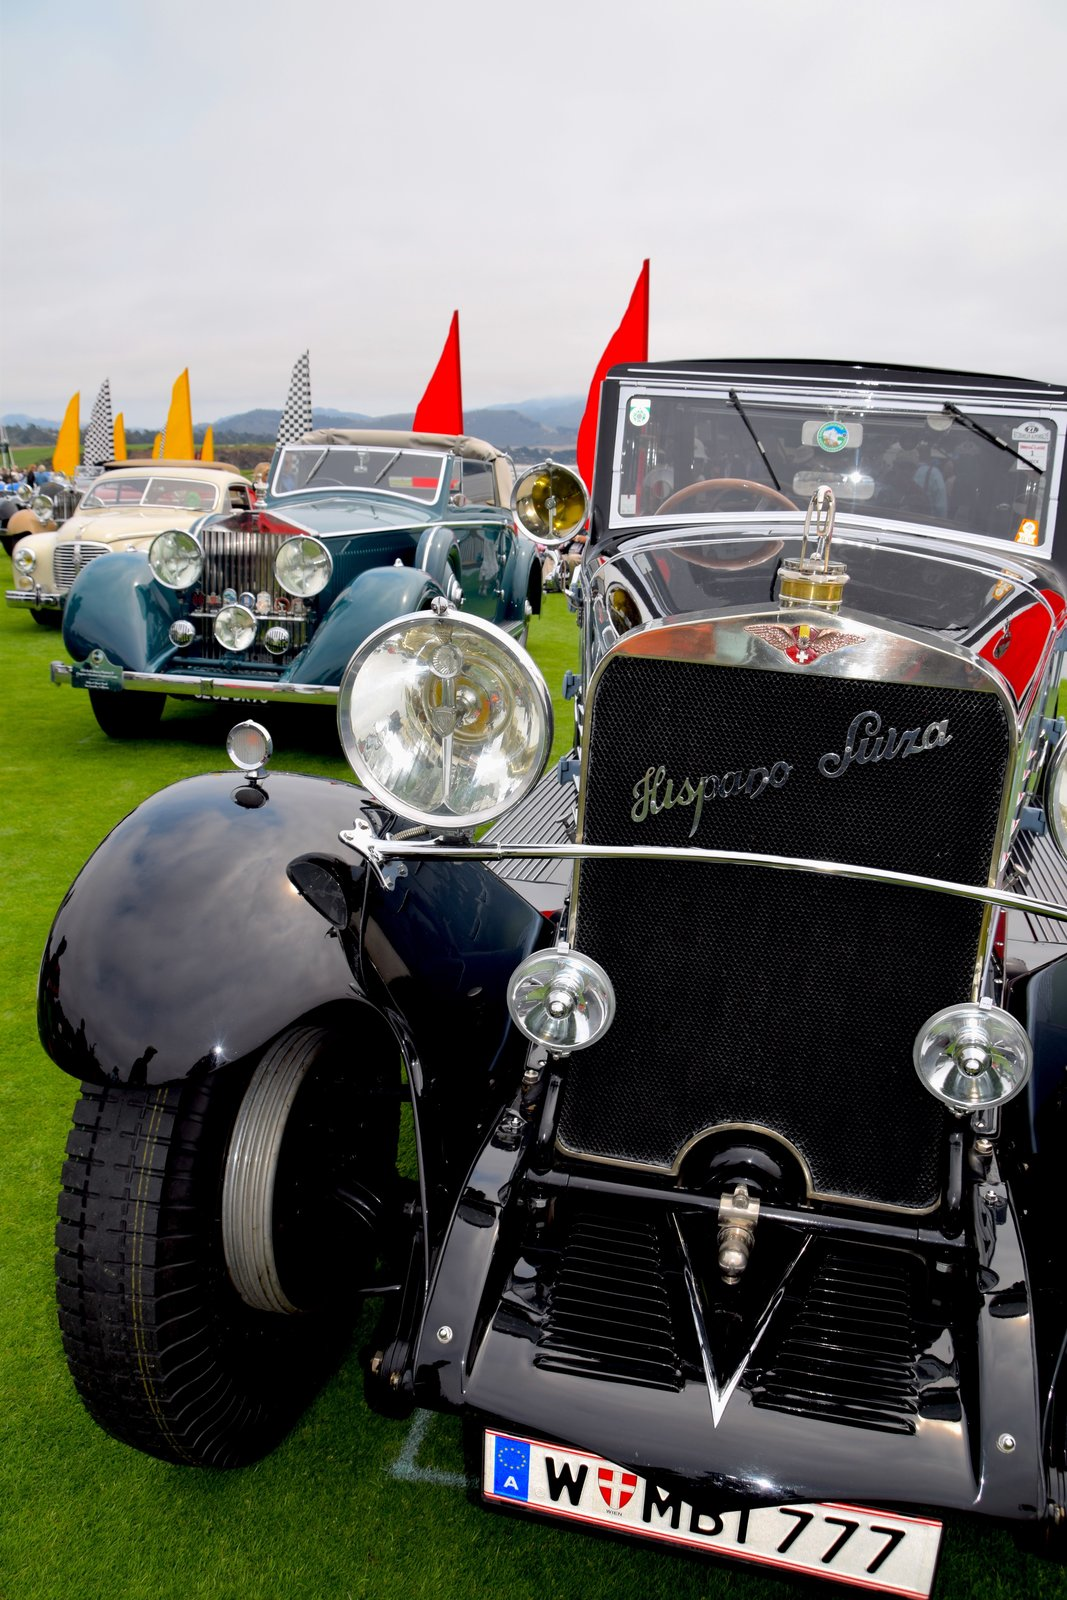 The 1926 Hispano-Suiza H6B Chapron Cabriolet was re-bodied in 1931 by Henri Chapron for the 1932 Paris Salon de l'Automobile and is thought to have been owned by the king of Tunisia. After being brought to the U.S. in the '50s by Alec Ulmann, it was sold to Joe Weider in NY, who owned it for 40 years.  Photo 9 of 10 in A Day at the Pebble Beach Concours d'Elegance Car Show